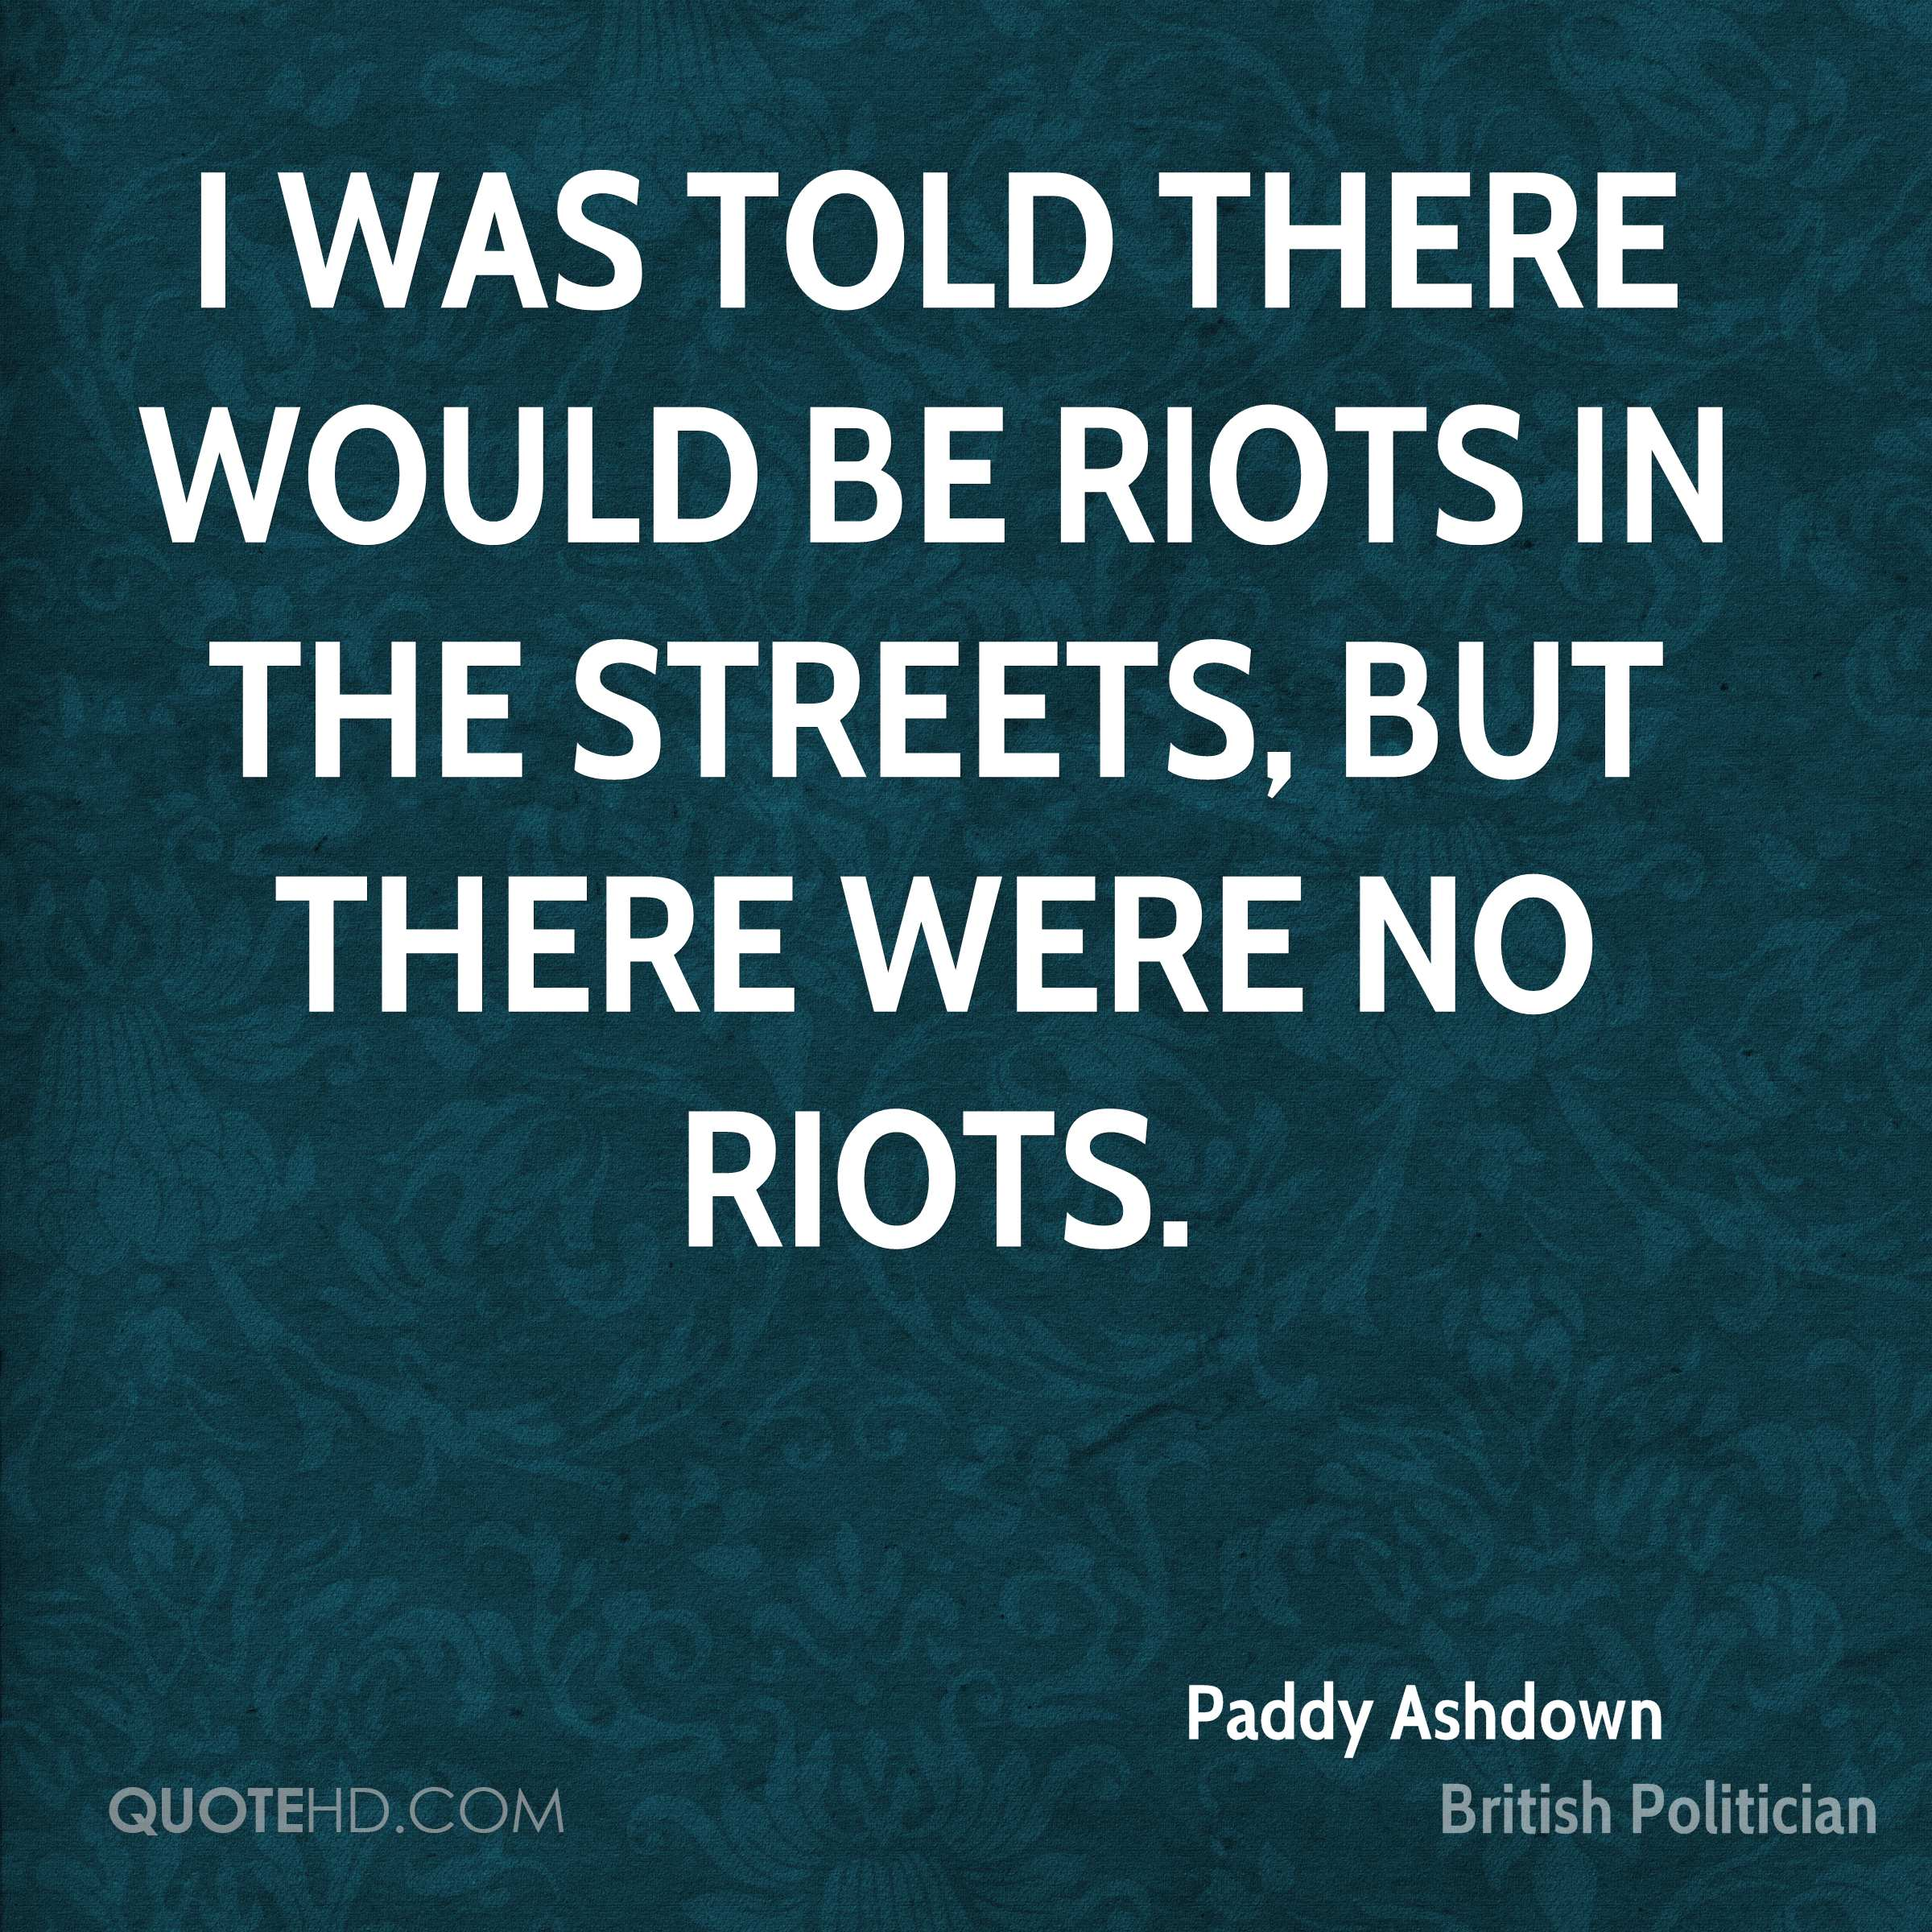 I was told there would be riots in the streets, but there were no riots.